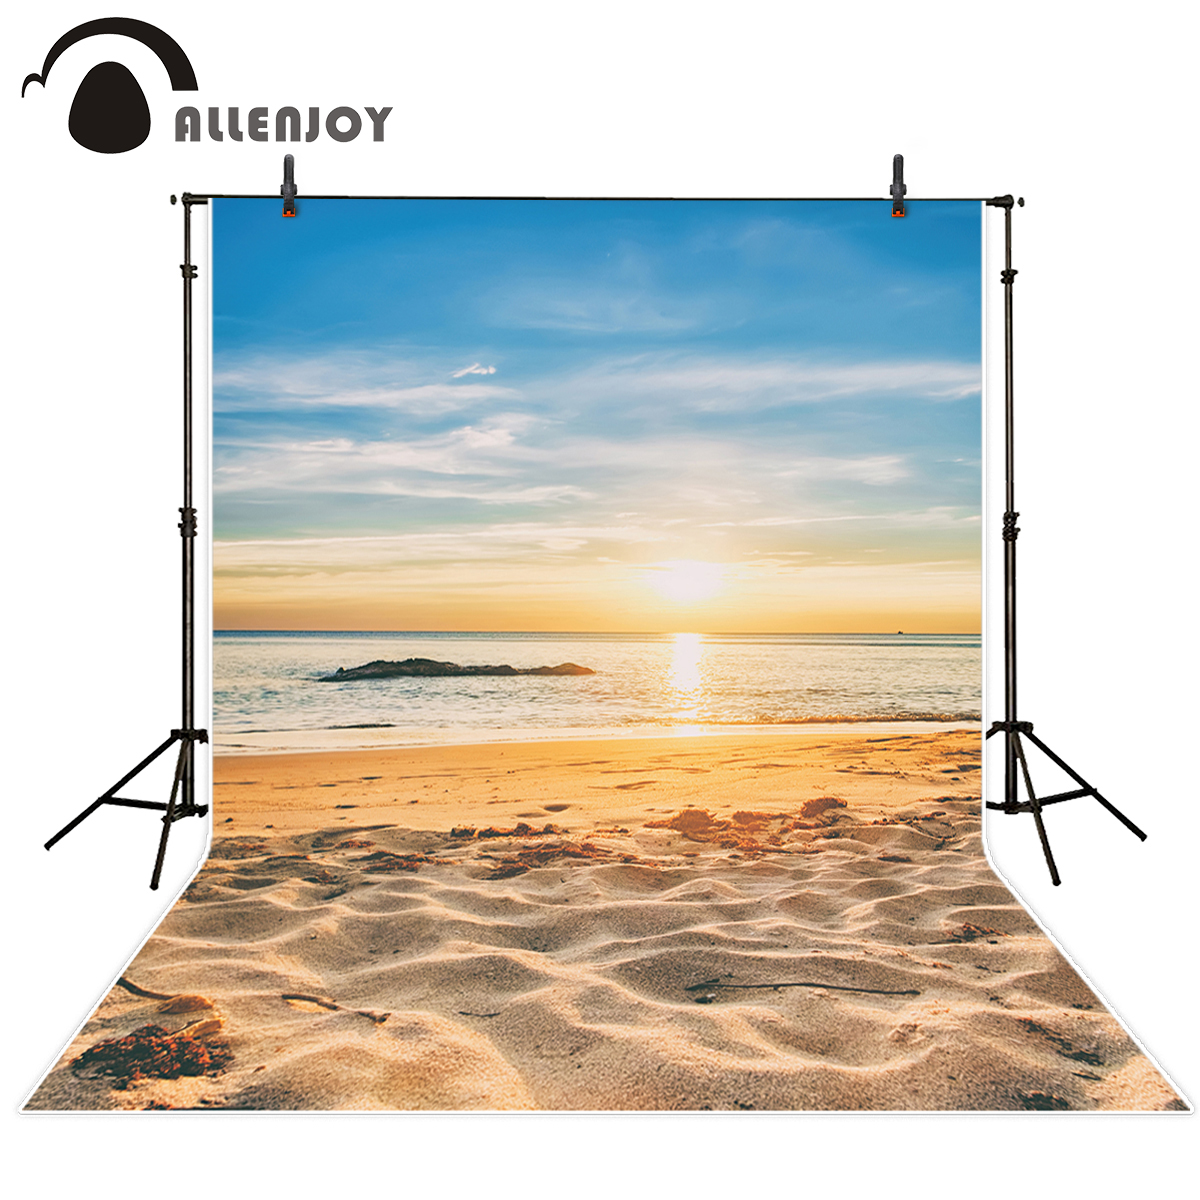 Allenjoy Vinyl material photography Beach sunset blue sky holiday summer ocean photography backdrop photo studio props photocall allenjoy scenery photo backdrop island coconut tree clouds beach photocall studio background for a photo shoot vinyl cloth